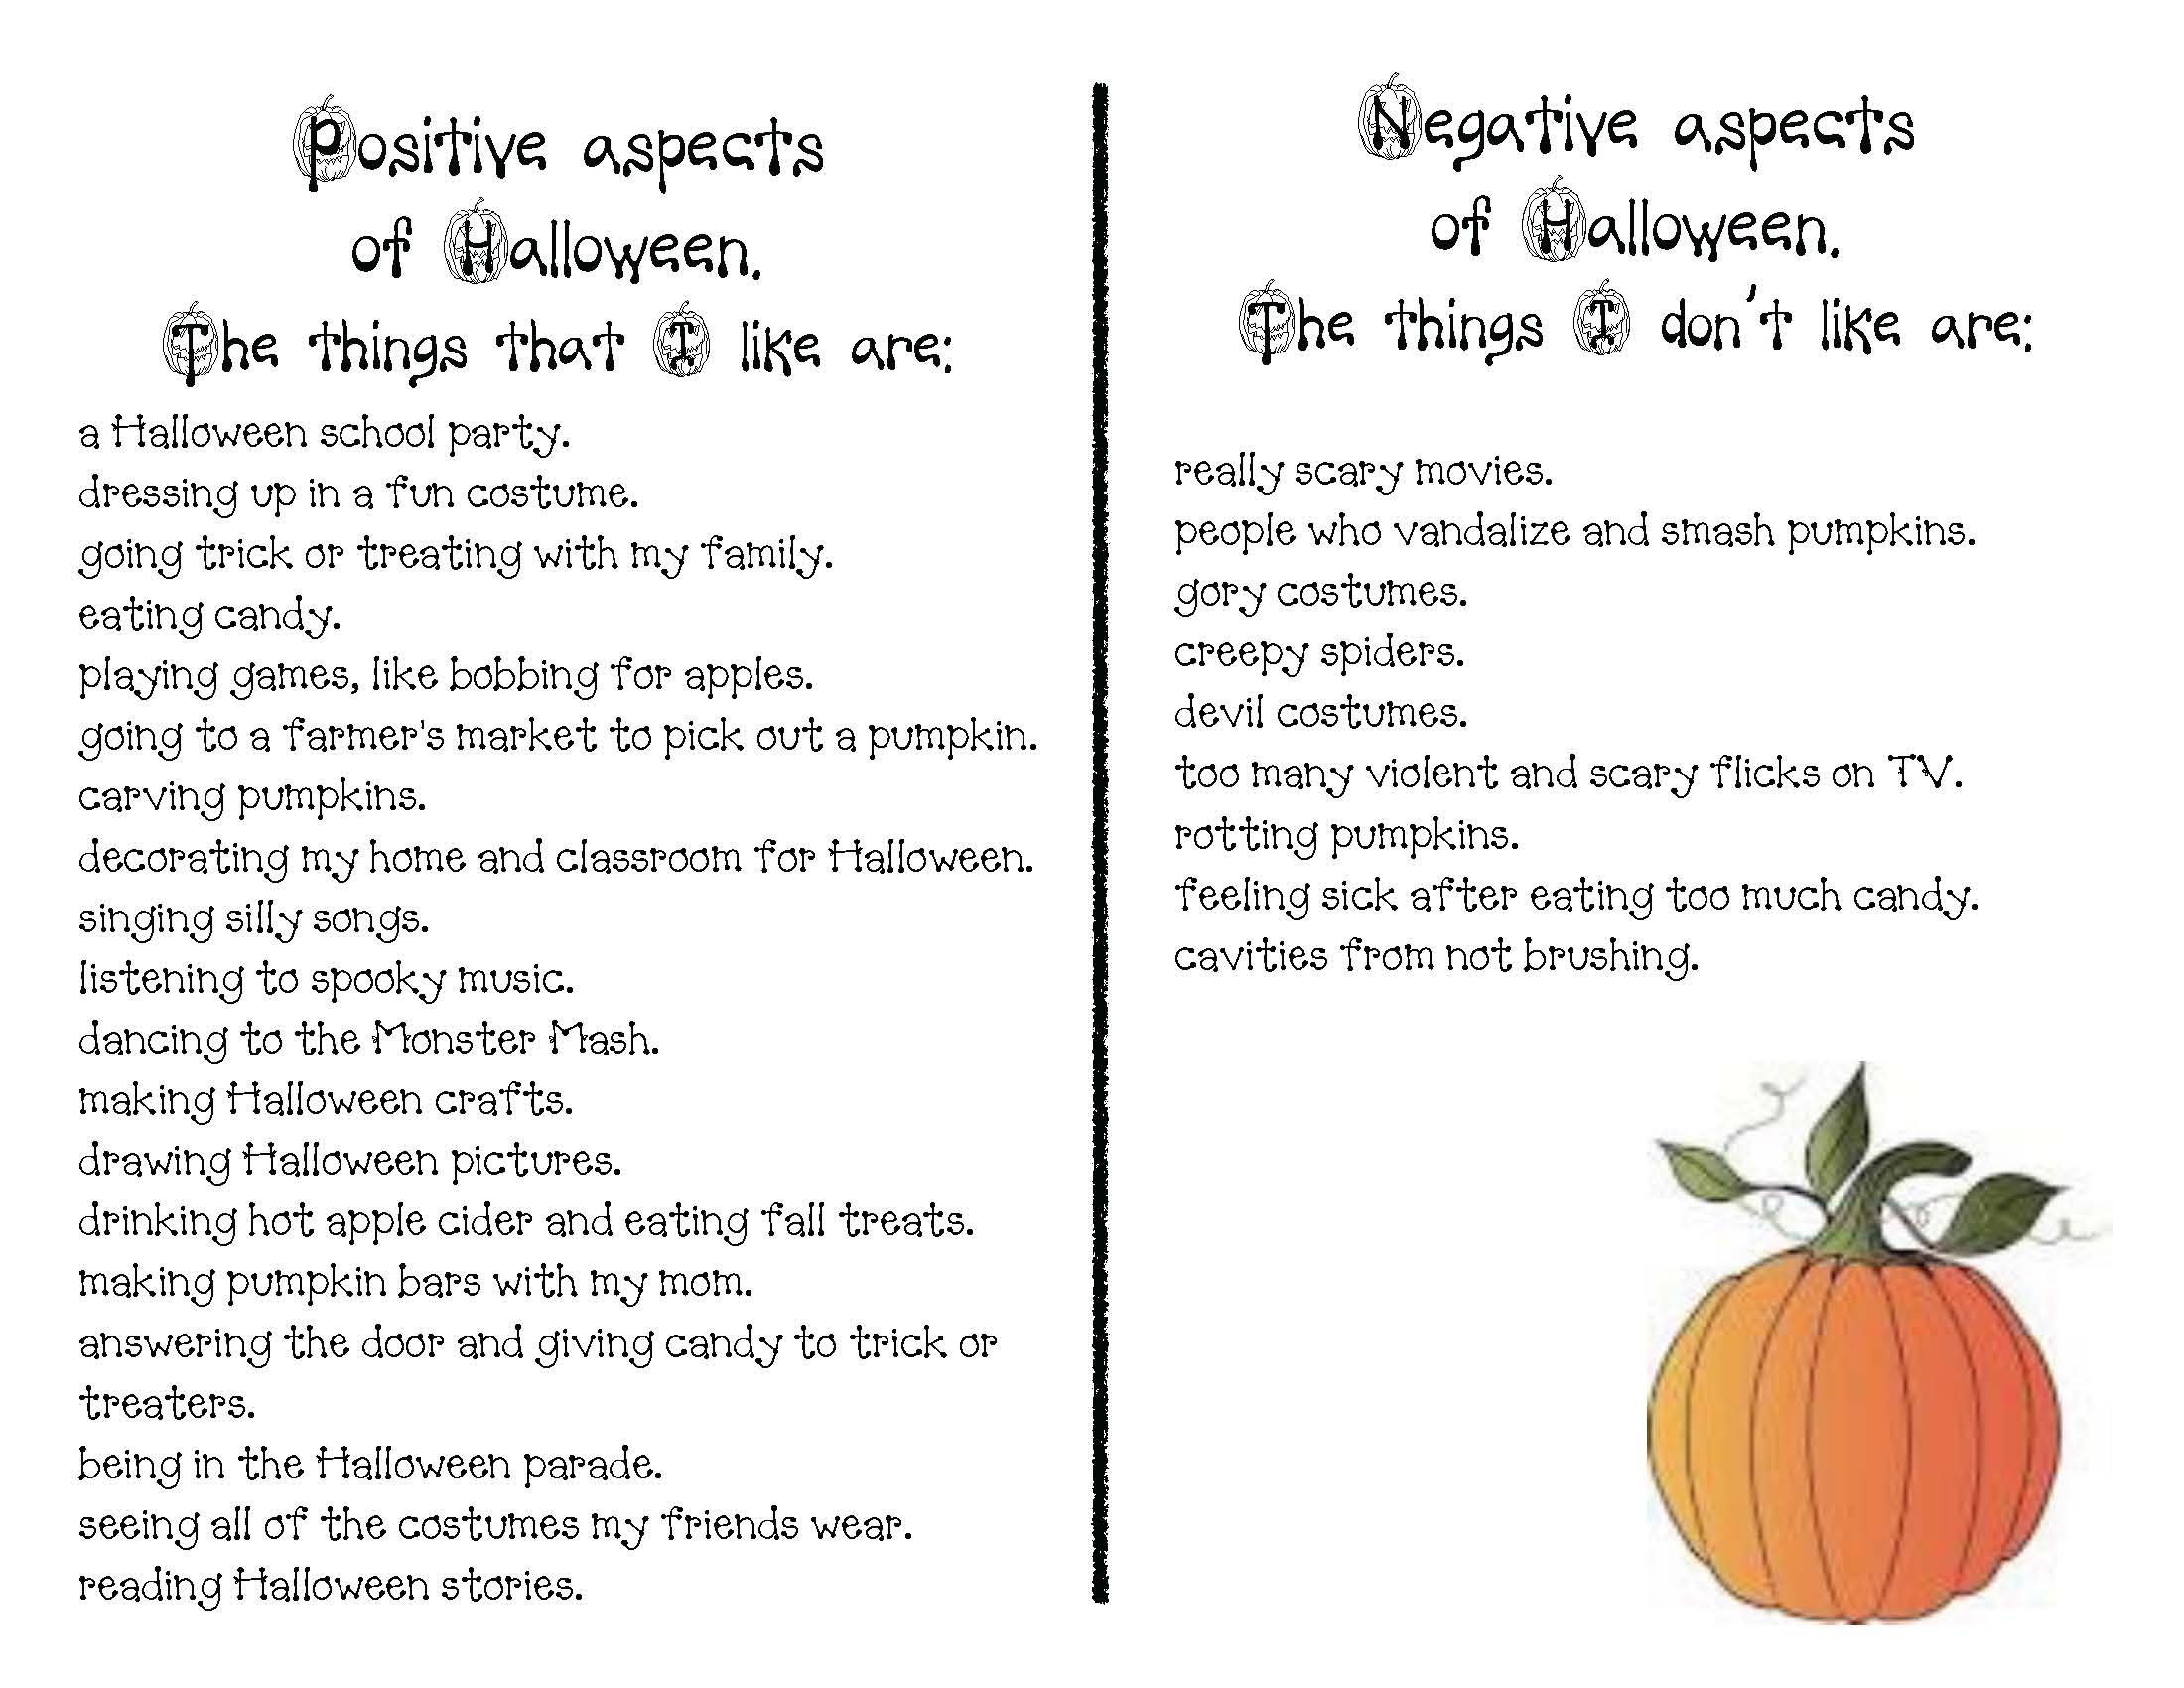 Halloween writing prompts, writing prompts for October, halloween crafts, halloween activities, positive negative art, pumpkin crafts, pumpkin activities